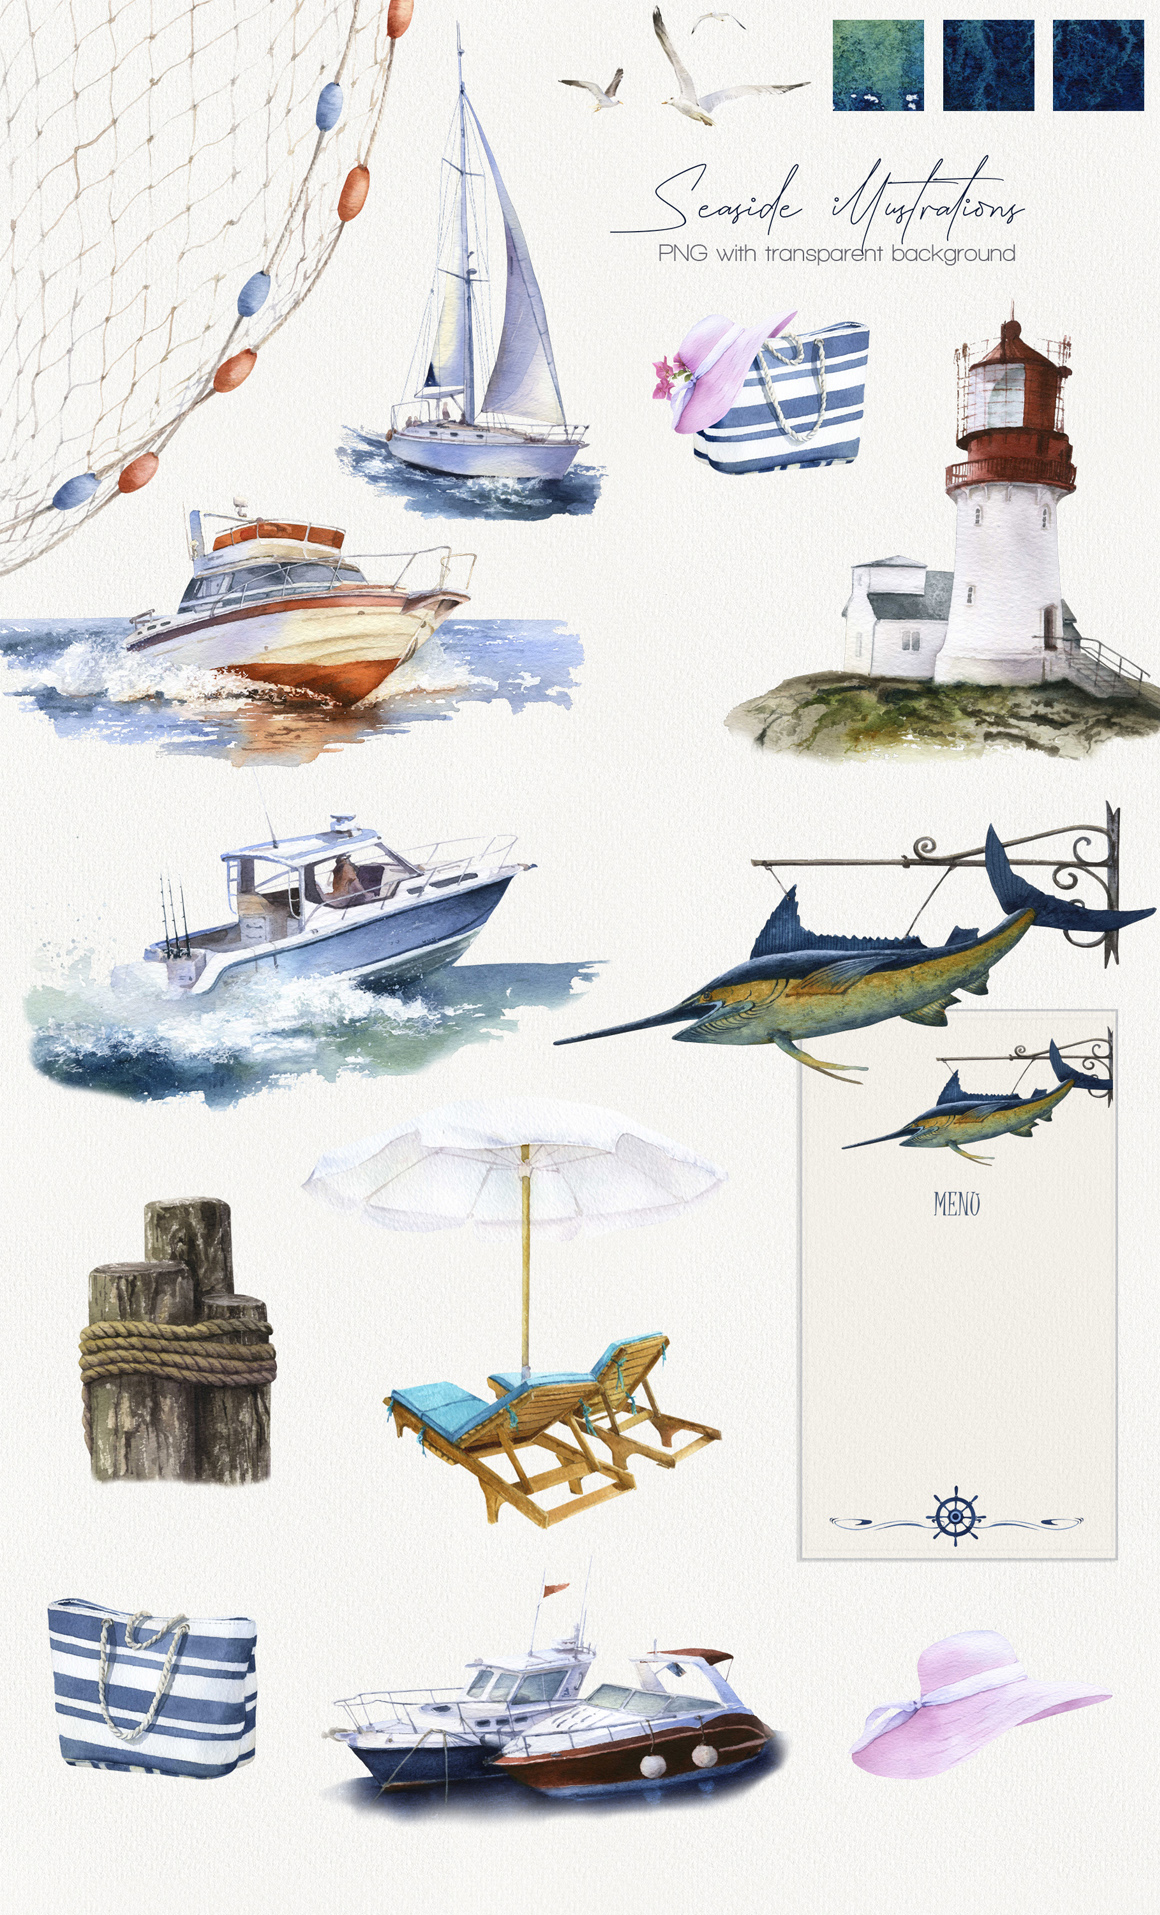 Seaside Watercolor Collection